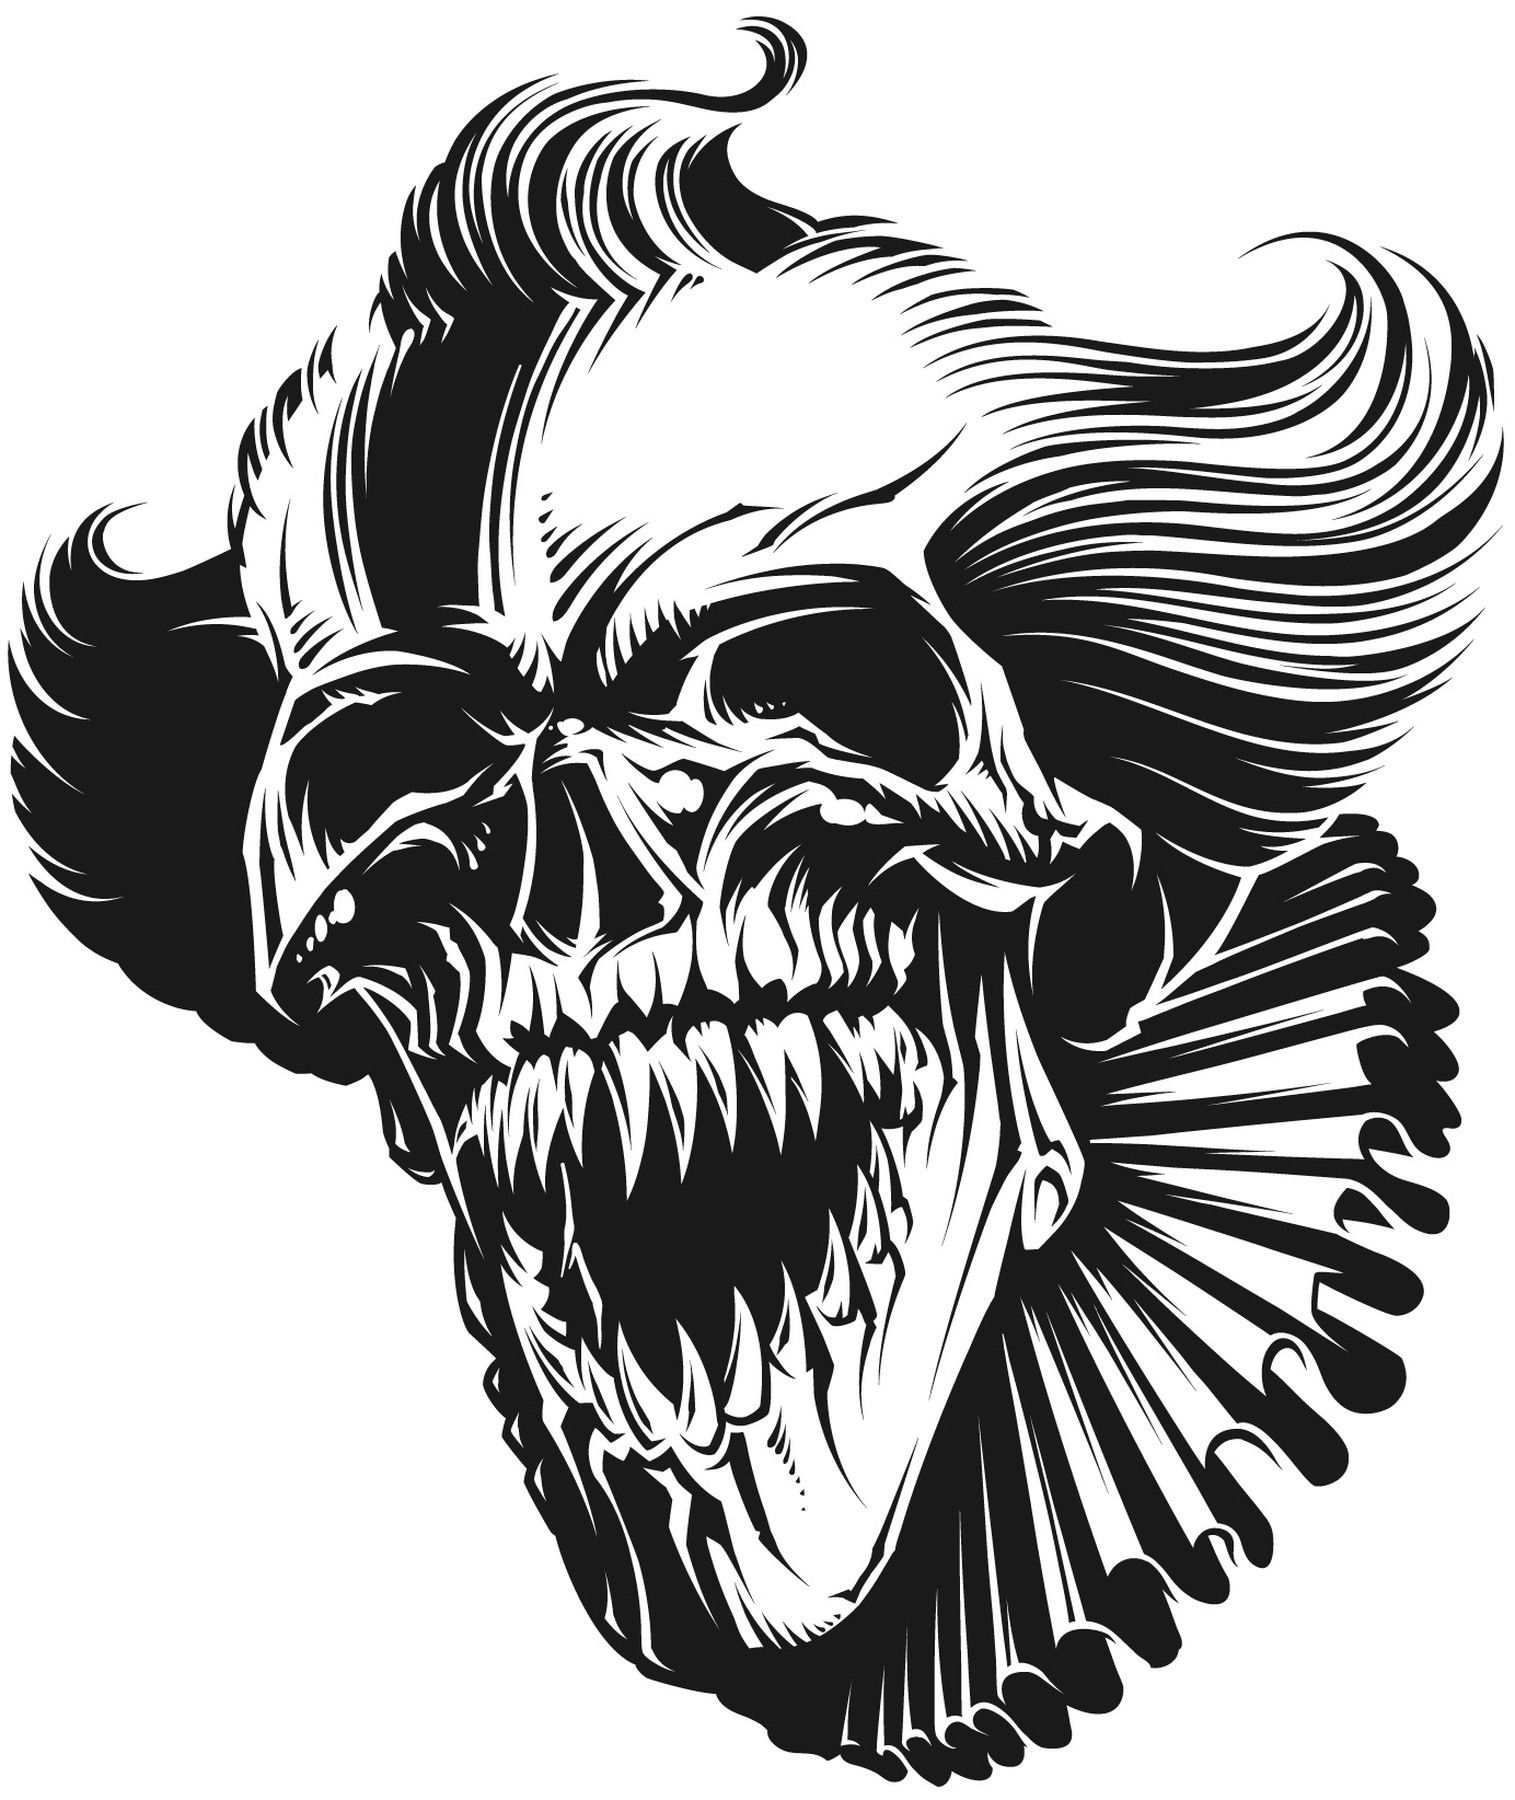 Color 28 Drawings Images Of Scary Clowns And Evil Jesters Skull